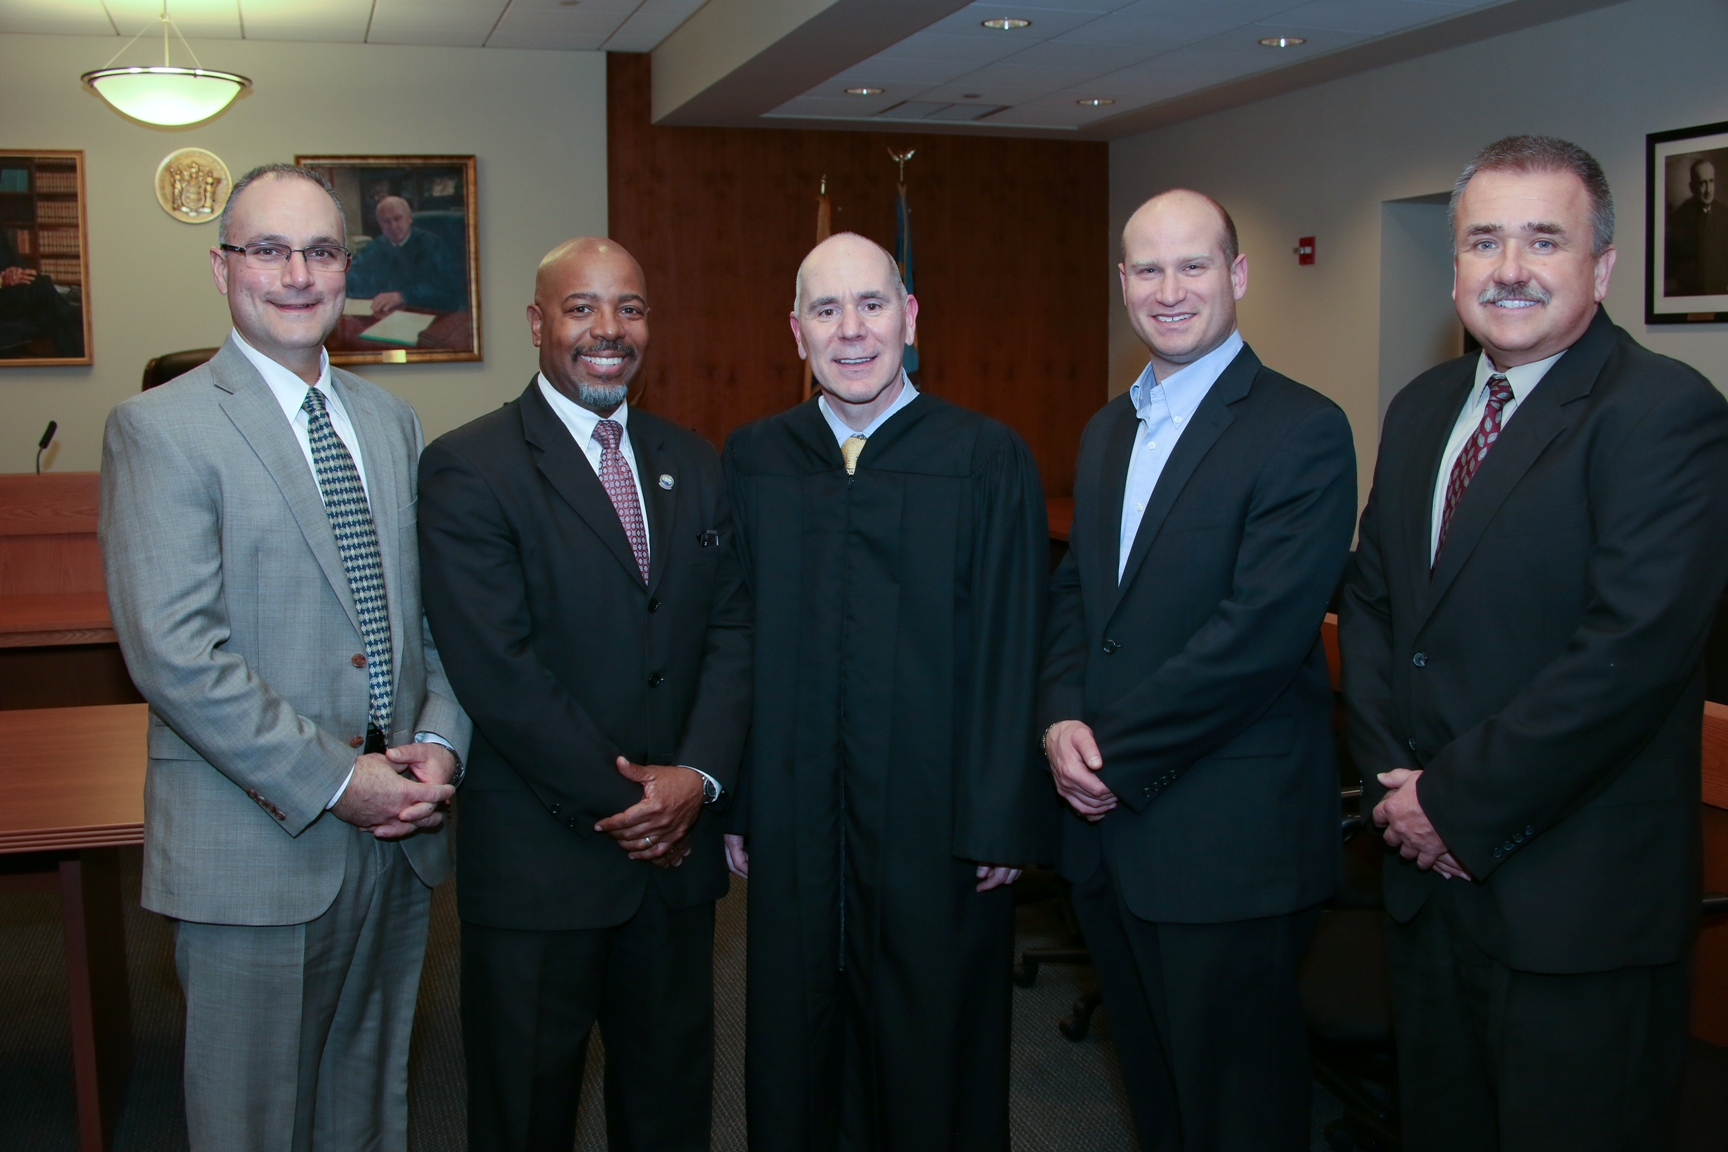 Somerset county family court judges